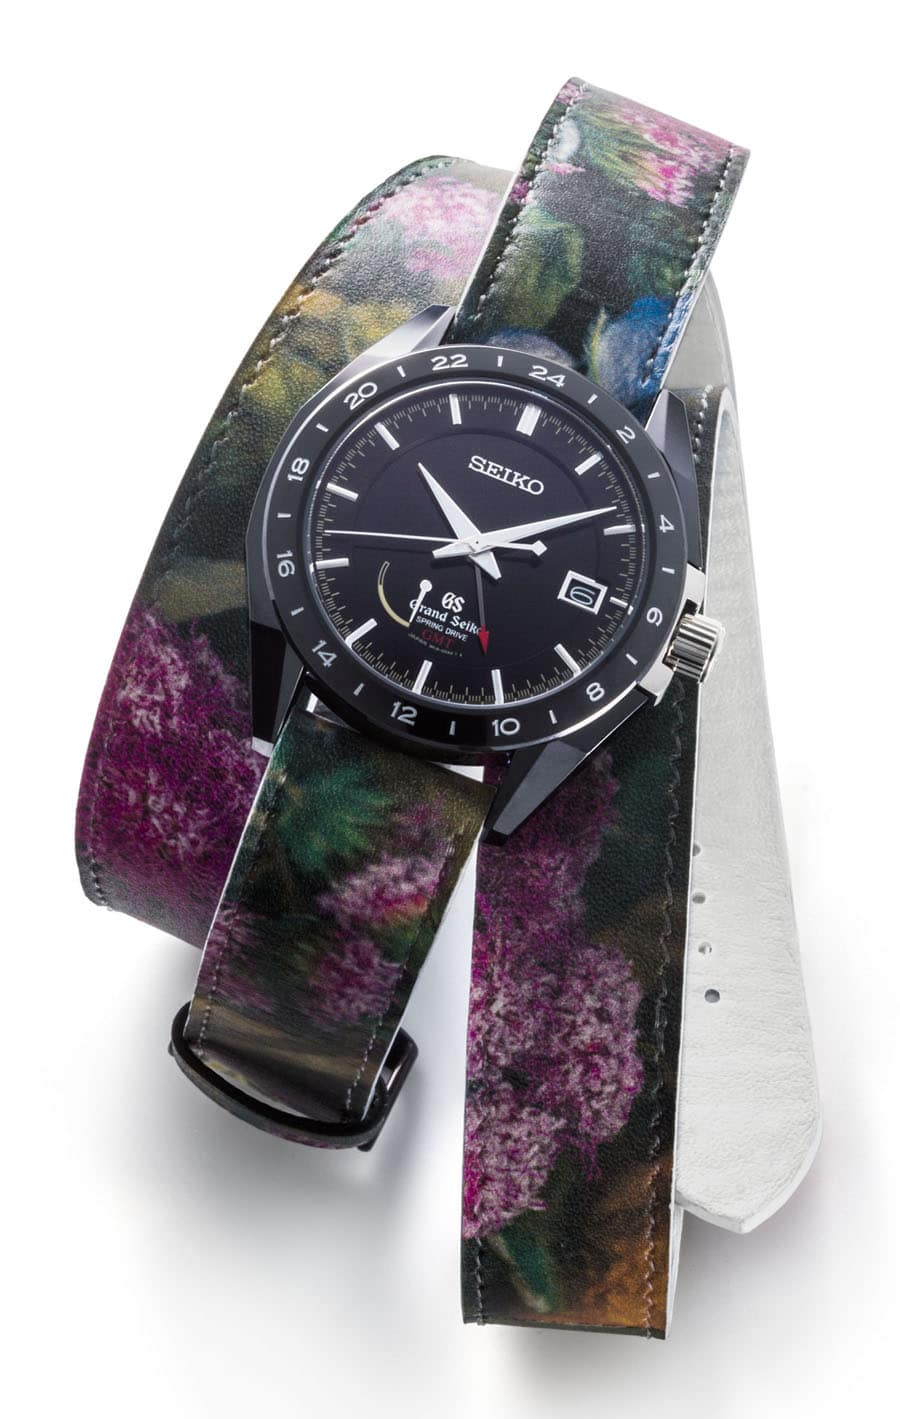 Seiko: Grand Seiko Black Ceramic Limited Edition Spring Drive GMT SBGE037 mit Wechselband